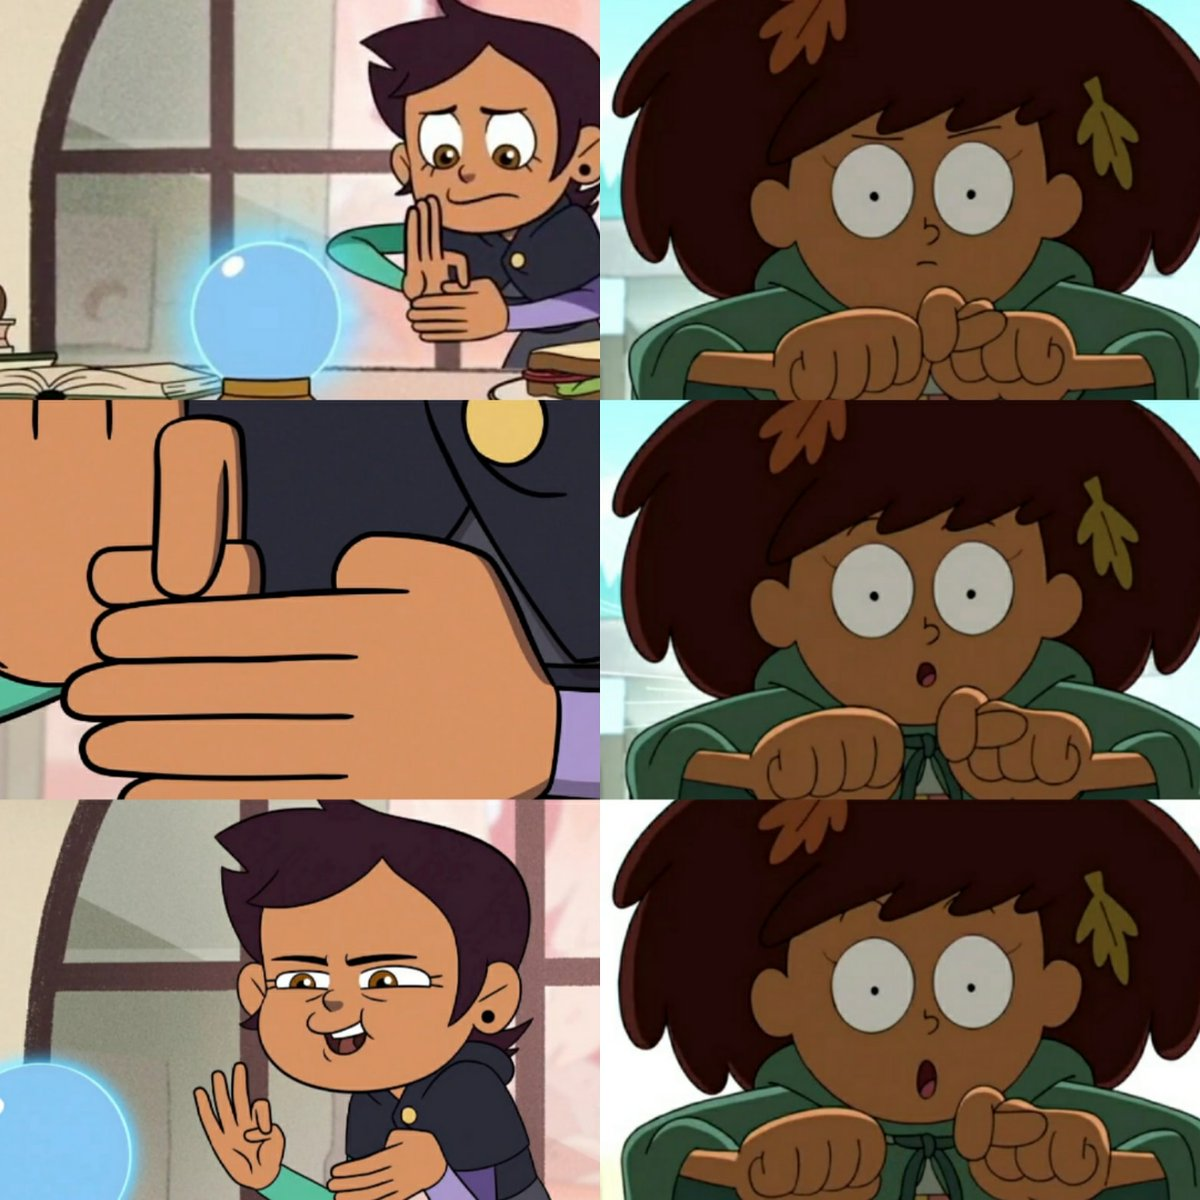 Humans' special magic trick  ---- They say humans can't do magic. Well look at that.   Disney The Owl House and Amphibia  #theowlhouse #amphibia #disney pic.twitter.com/YuIjZYbZmL